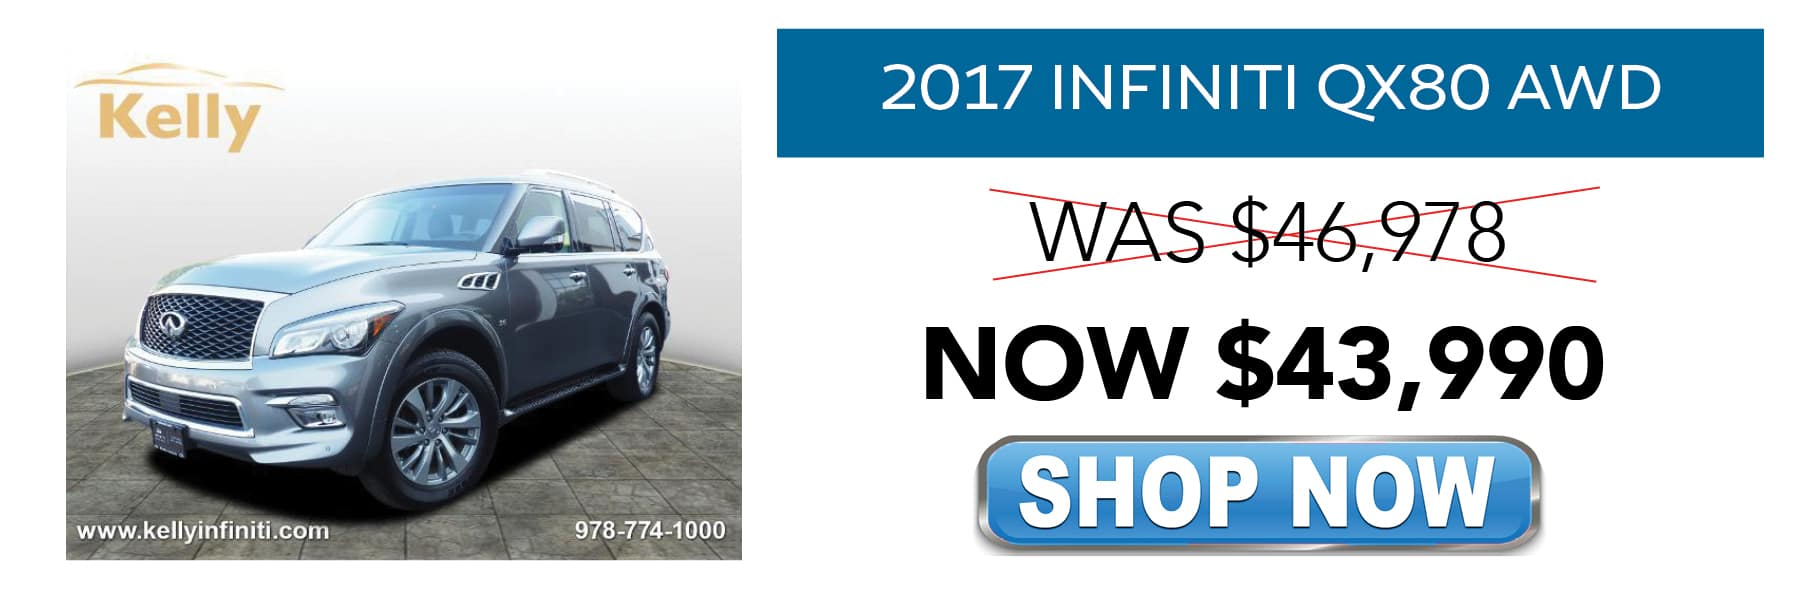 Certified Pre-Owned 2017 INFINITI QX80 Now $43,990